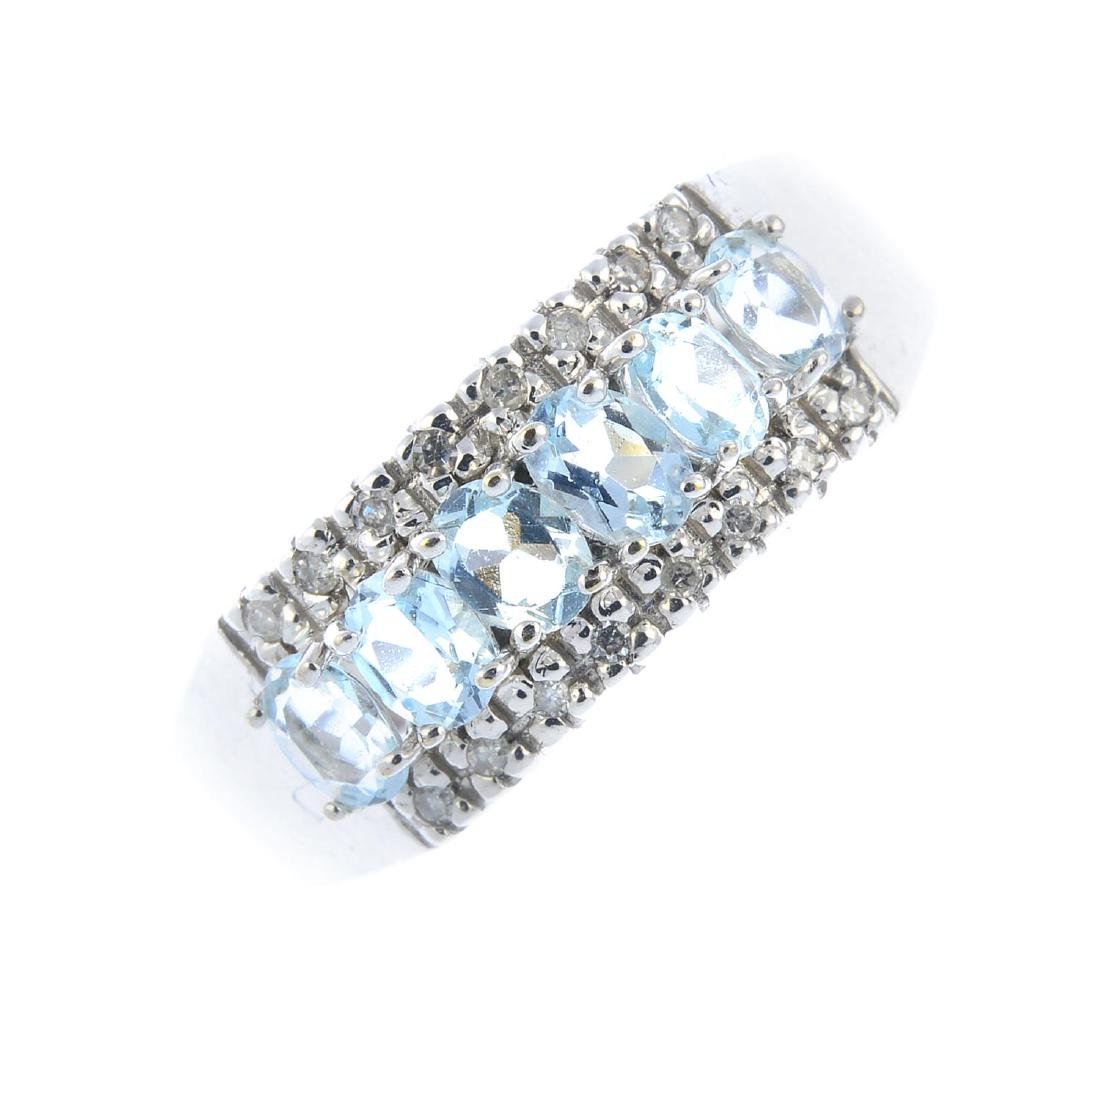 A 9ct gold aquamarine and diamond ring. The oval-shape